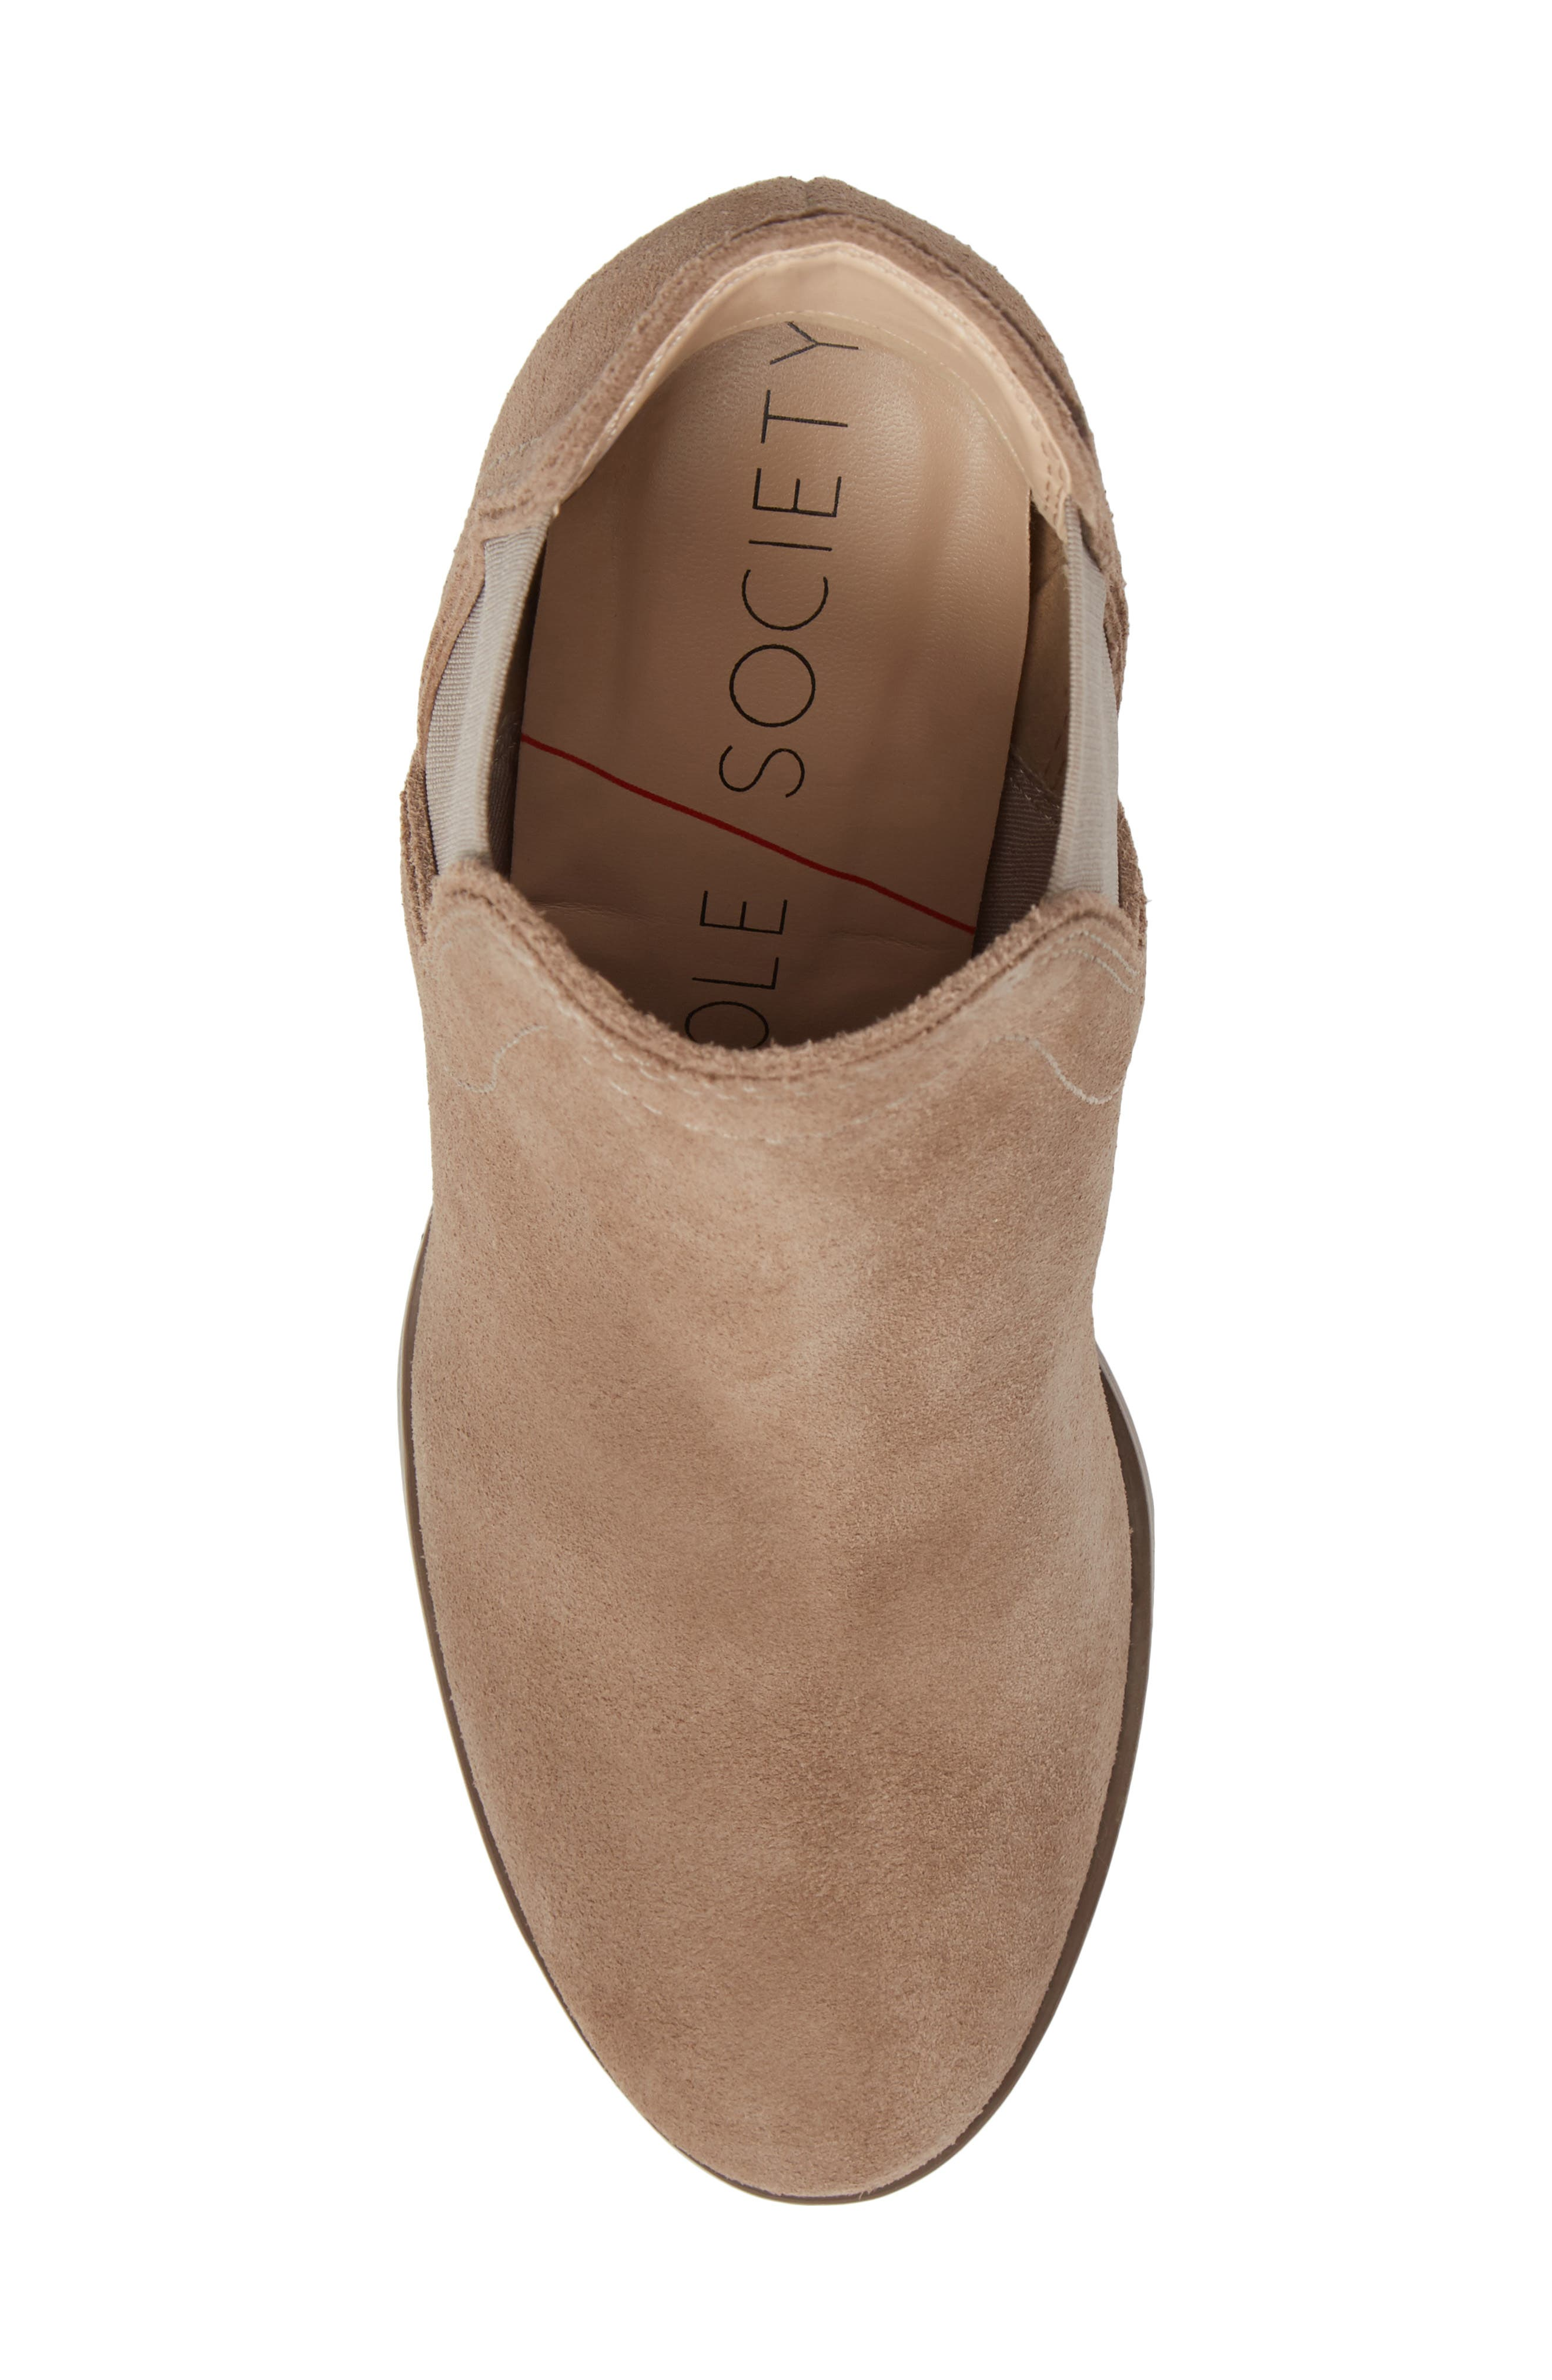 Carrillo Bootie,                             Alternate thumbnail 5, color,                             203